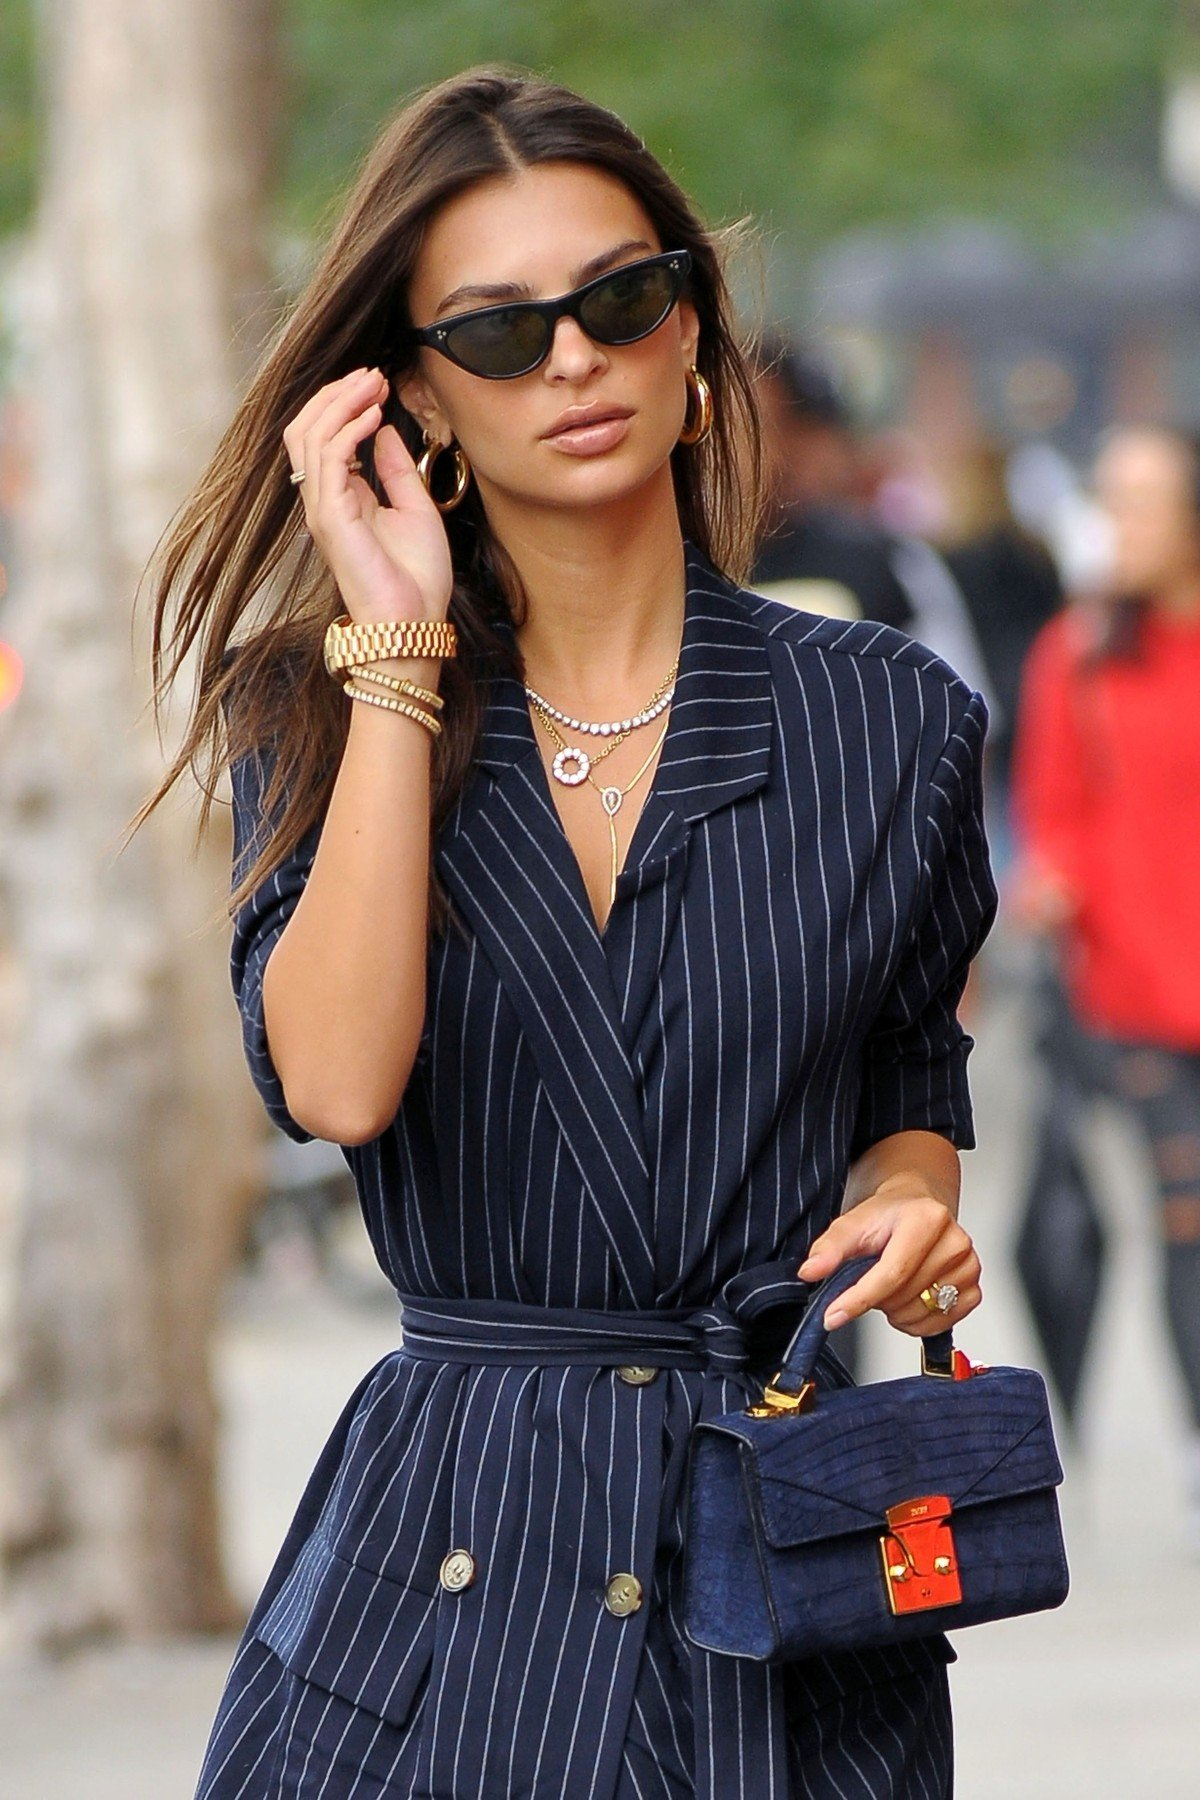 BGUK_1334035 - New York City, New  - American model Emily Ratajkowski is seen out and about in New York City. (NYC). The model wore a navy blue menswear-inspired pinstriped shirt dress with white trainers and she accessorized her outfit with a tiny blue purse.  Pictured: Emily Ratajkowski  BACKGRID UK 11 SEPTEMBER 2018, Image: 386327122, License: Rights-managed, Restrictions: , Model Release: no, Credit line: Profimedia, Xposurephotos